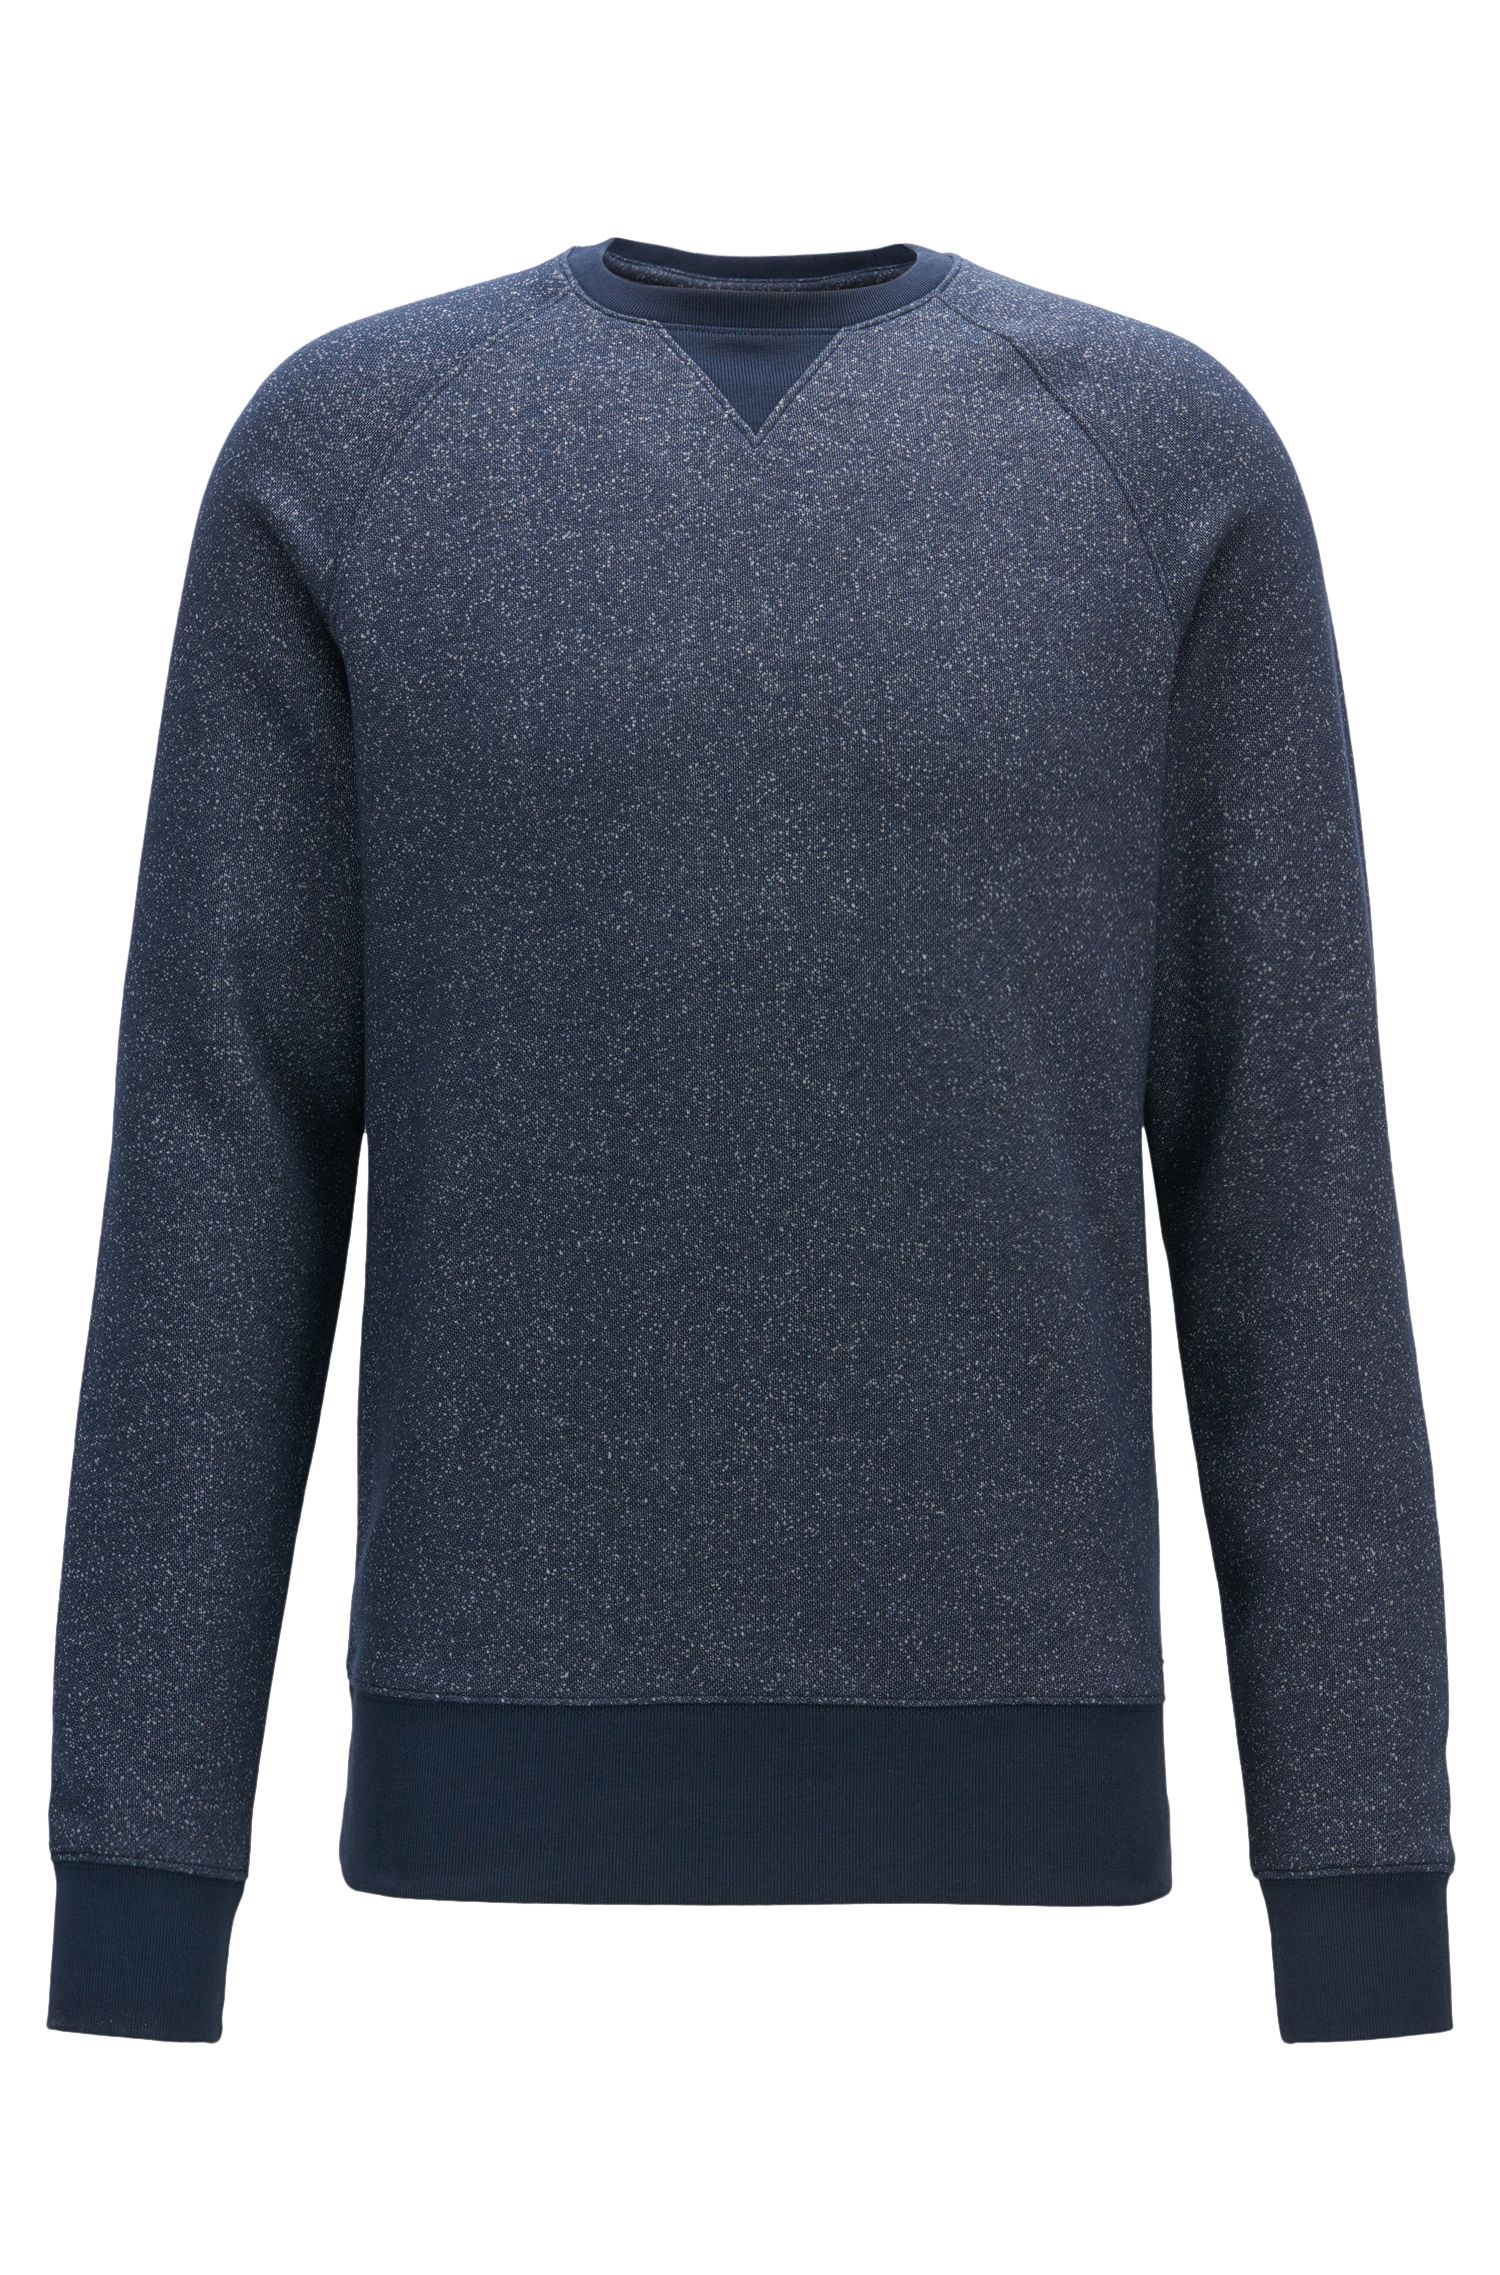 Mouliné sweatshirt in a soft cotton blend